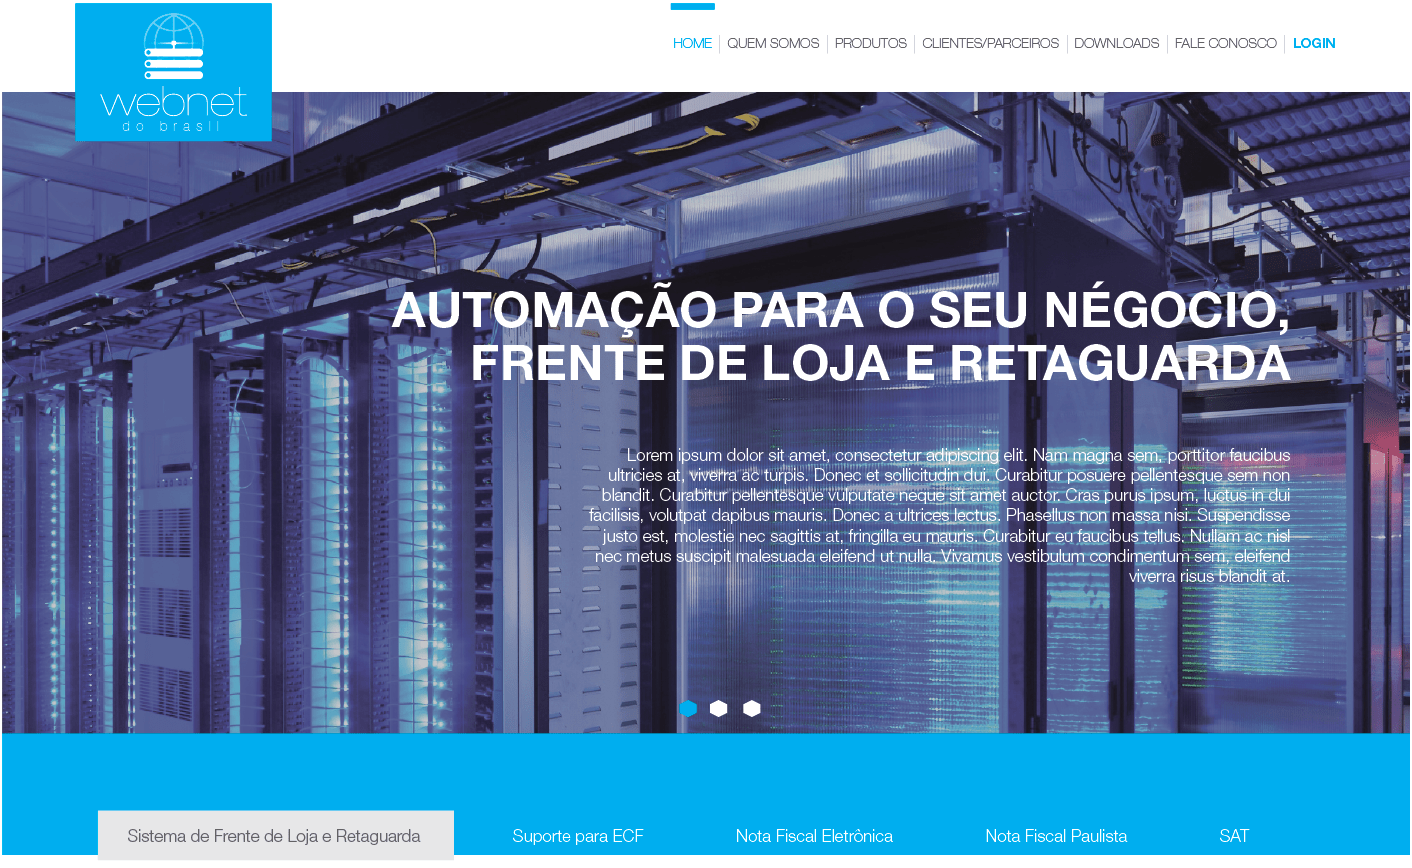 Site Webnet do Brasil - Widesigner